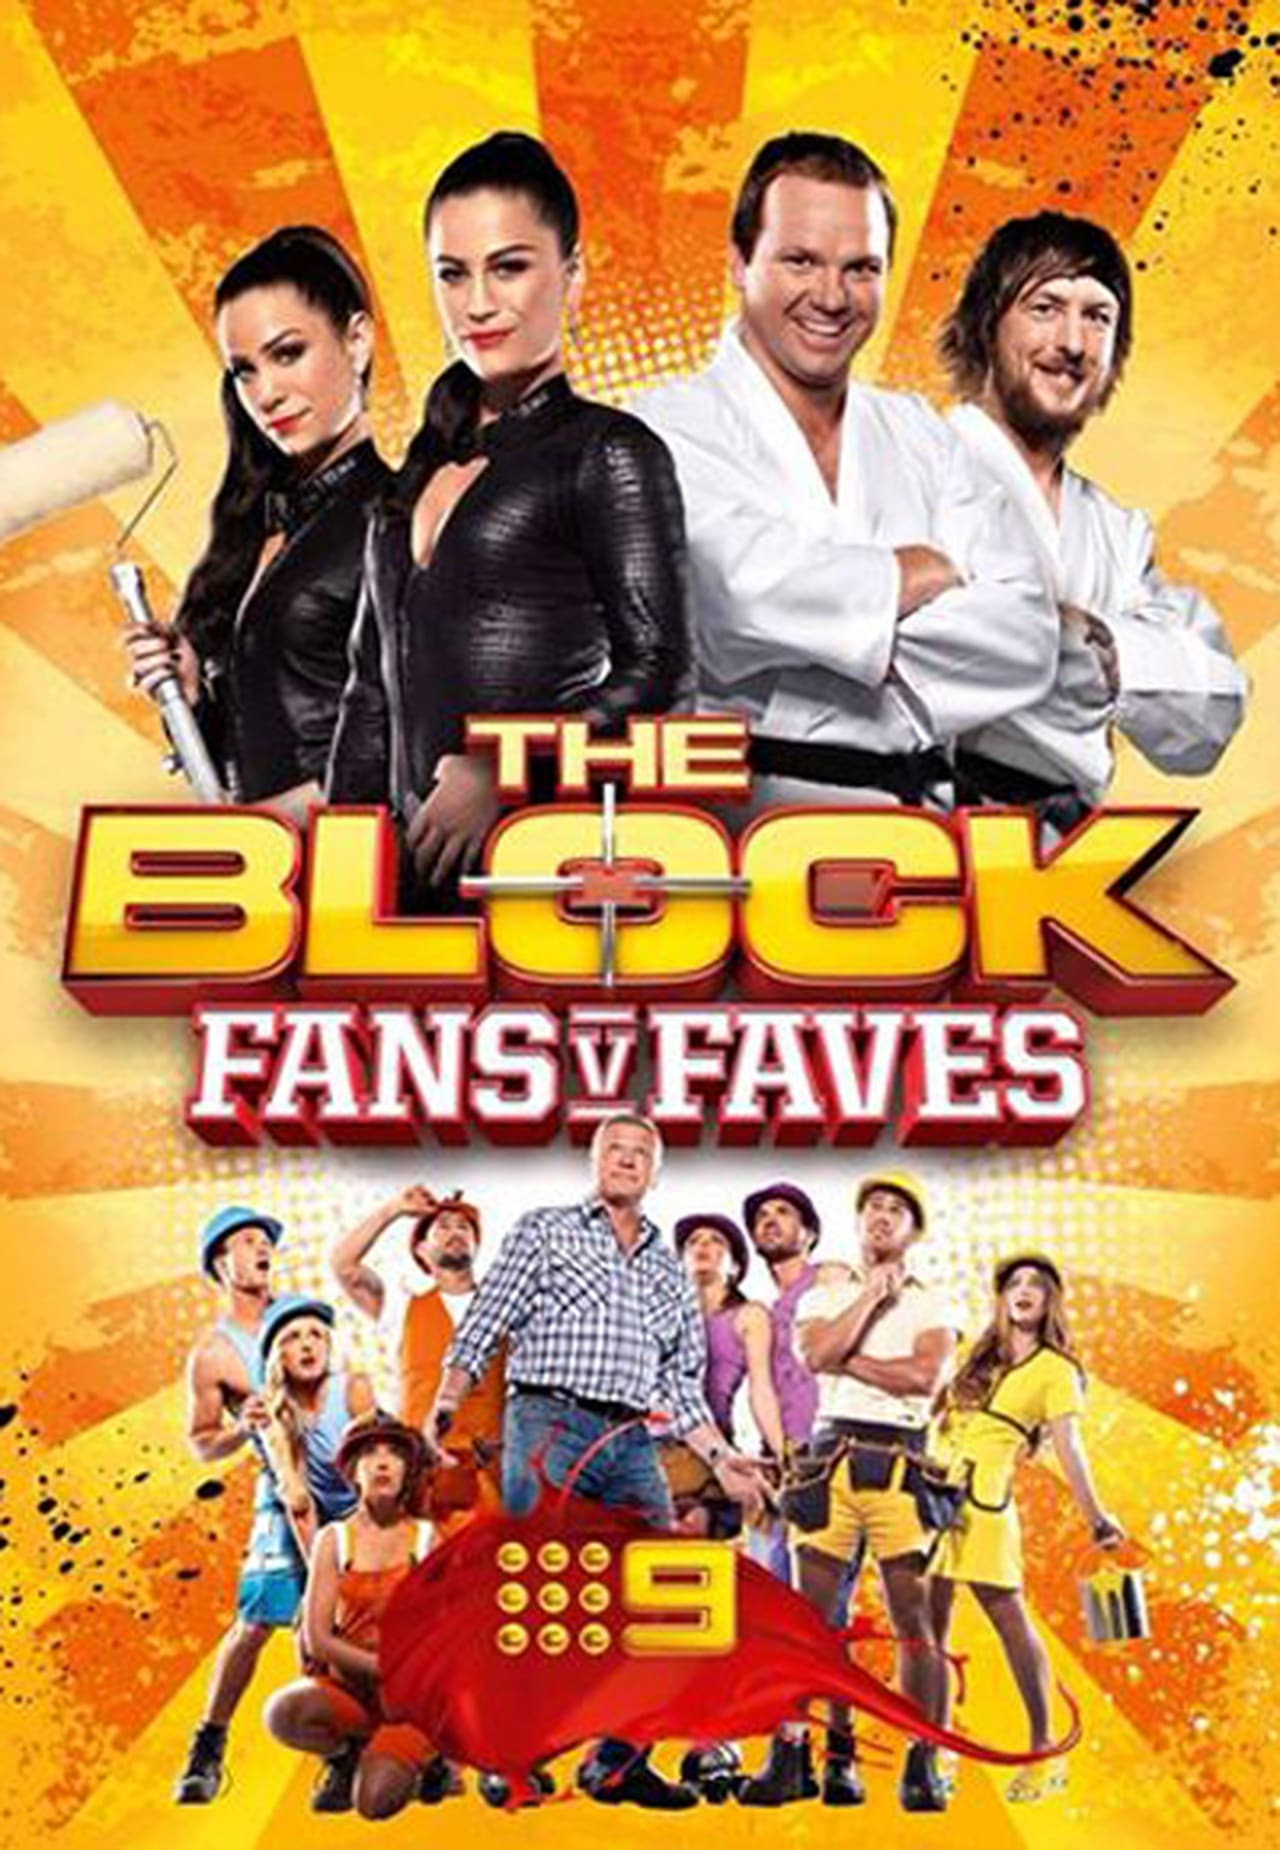 Putlocker The Block Season 8 (2014)